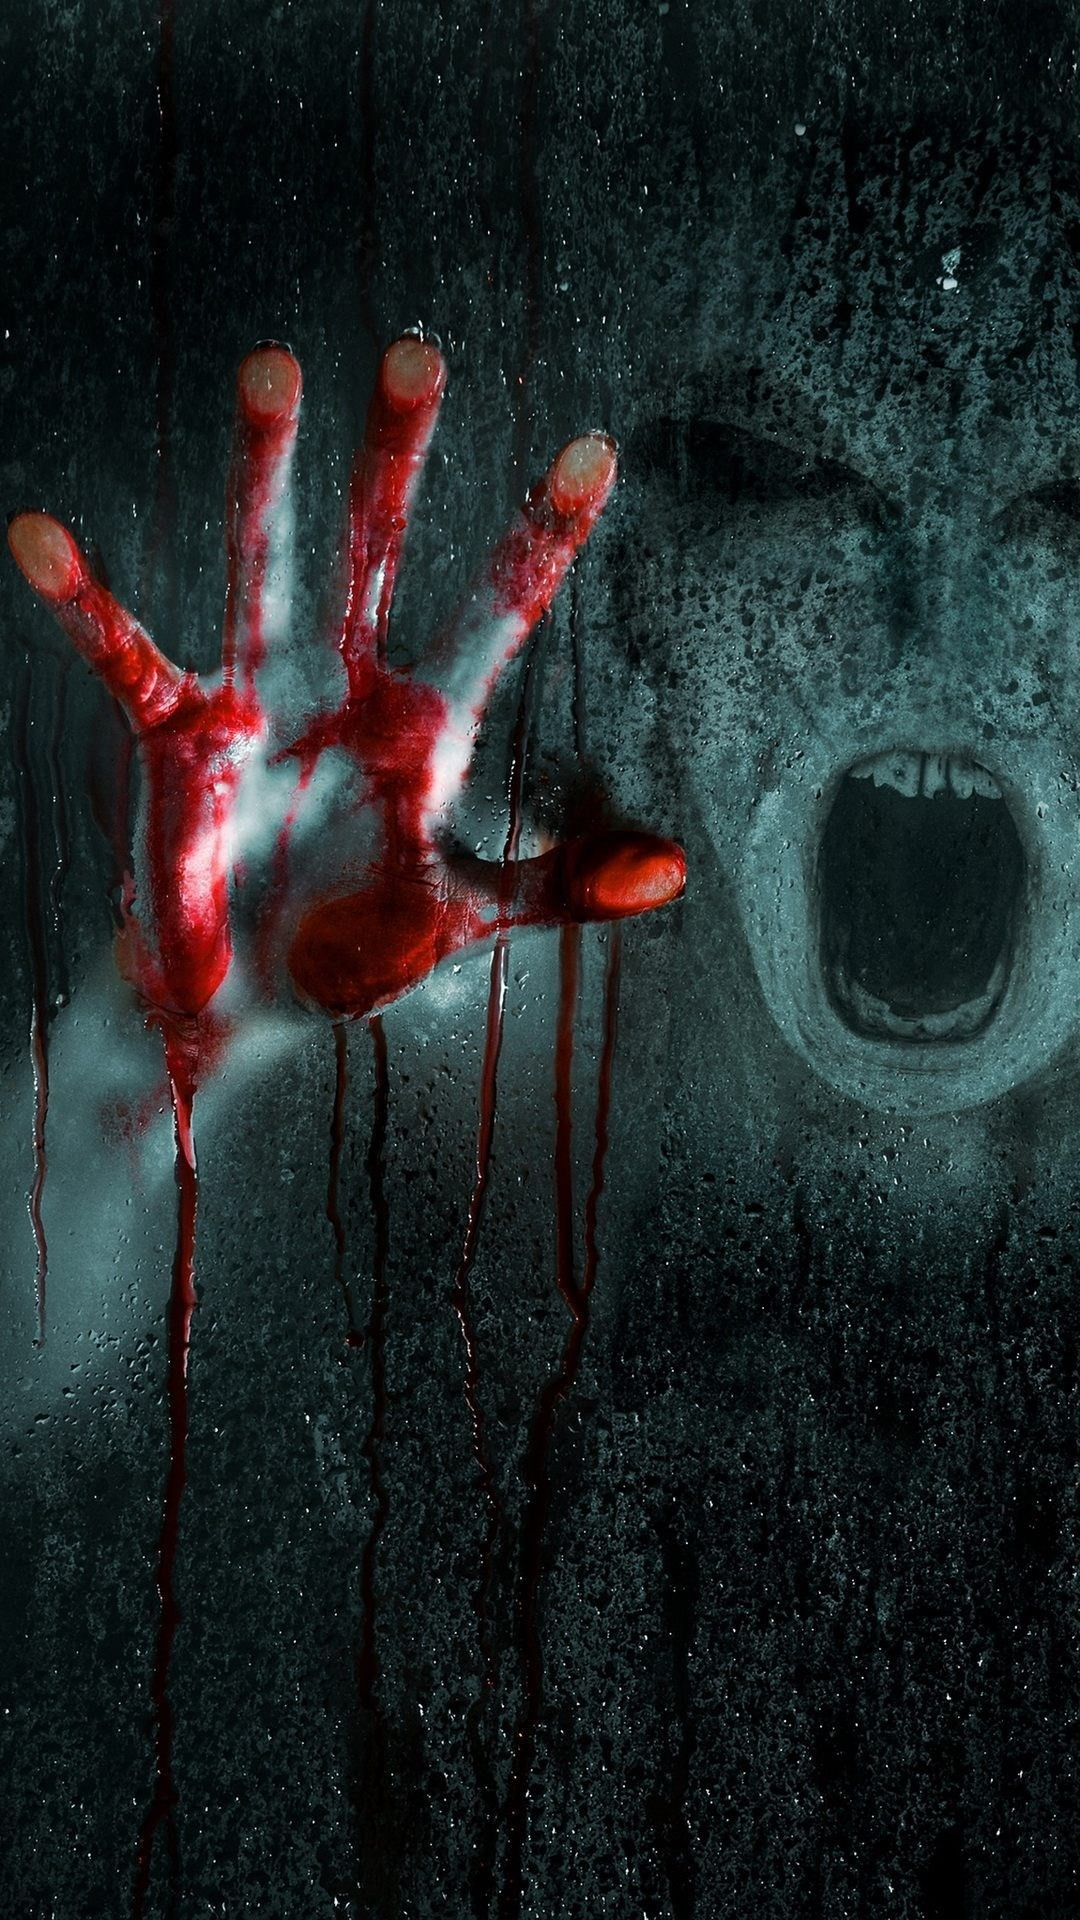 Scary Wallpaper for iPhone 56 images 1080x1920